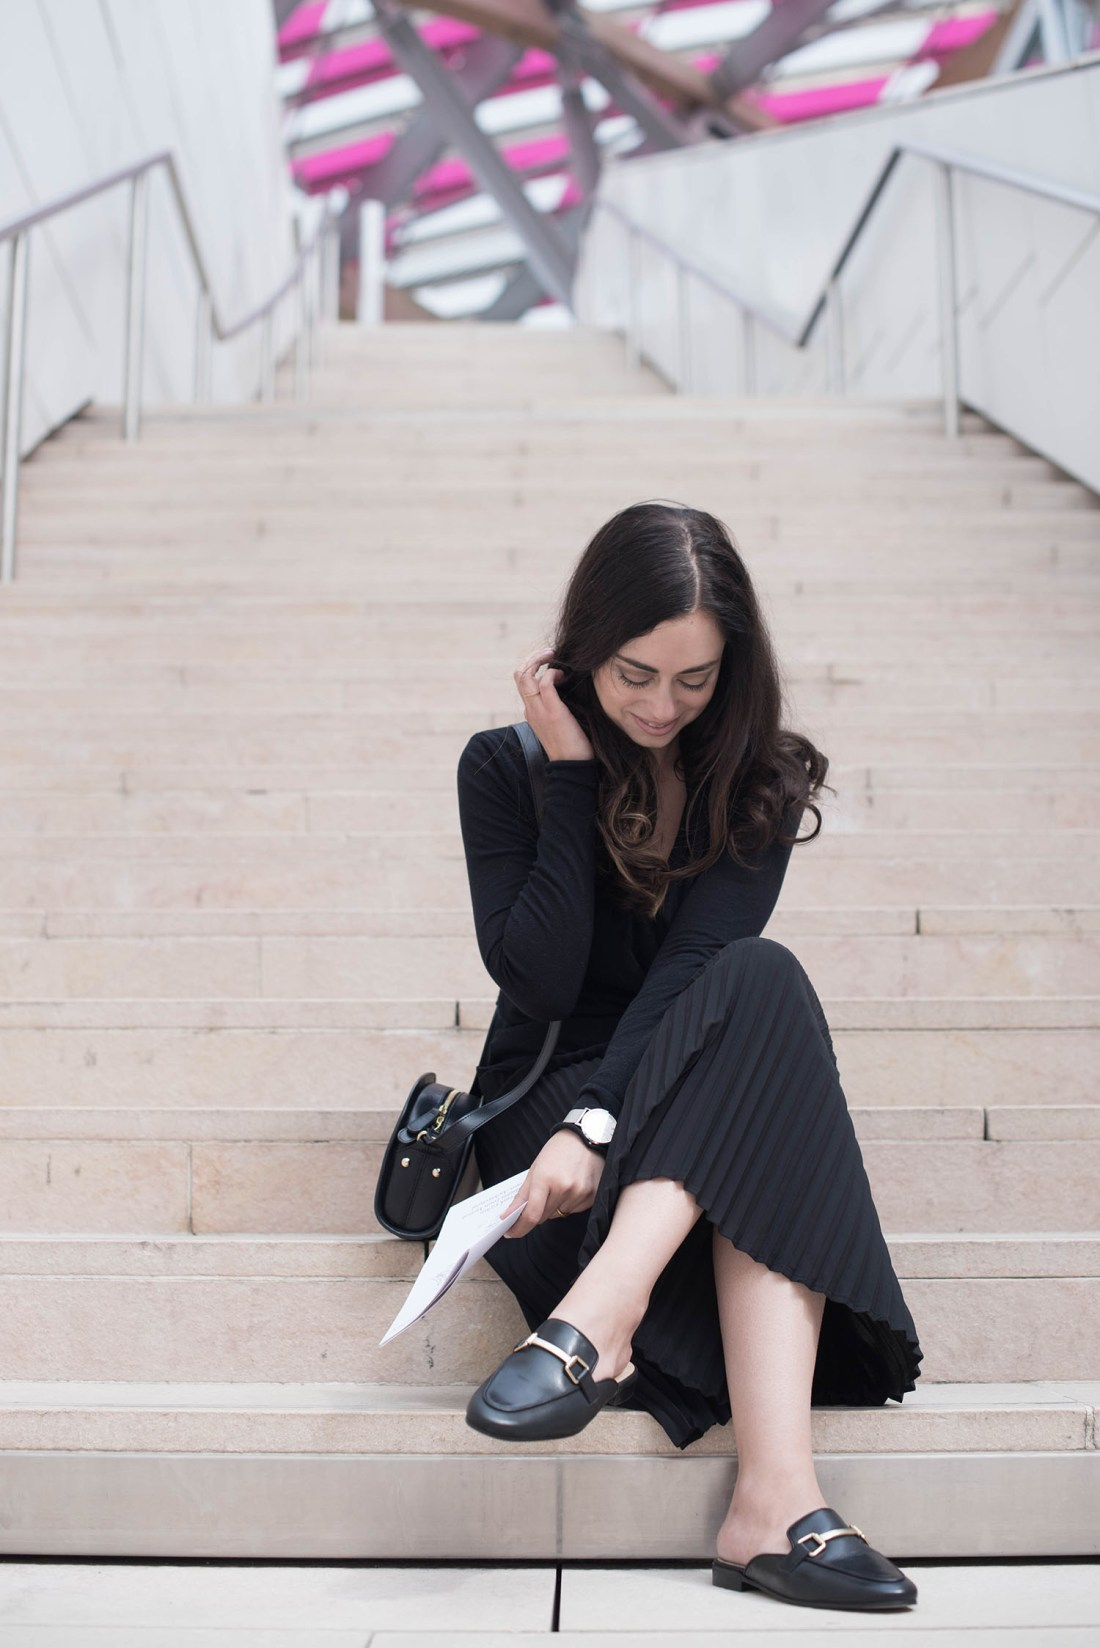 Fashion blogger Cee Fardoe of Coco & Vera sits on the stairs at the Fondation Louis Vuitton wearing an Aritzia pleated skirt and Jonak mules